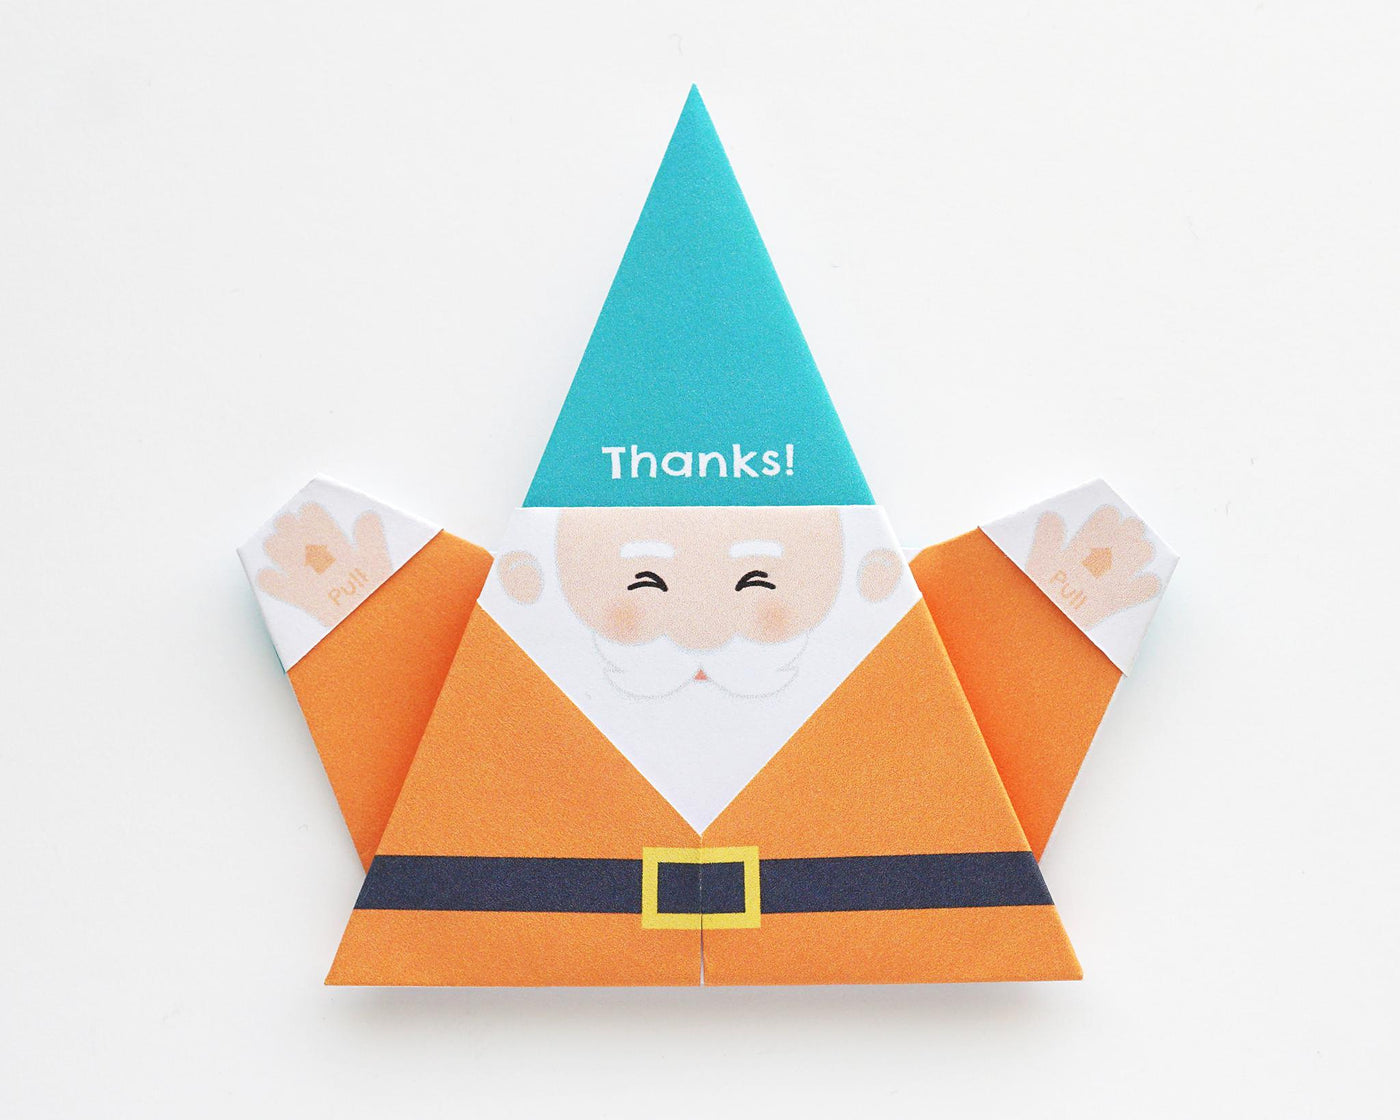 Printable DIY Origami Gnome Card - Thank You Design